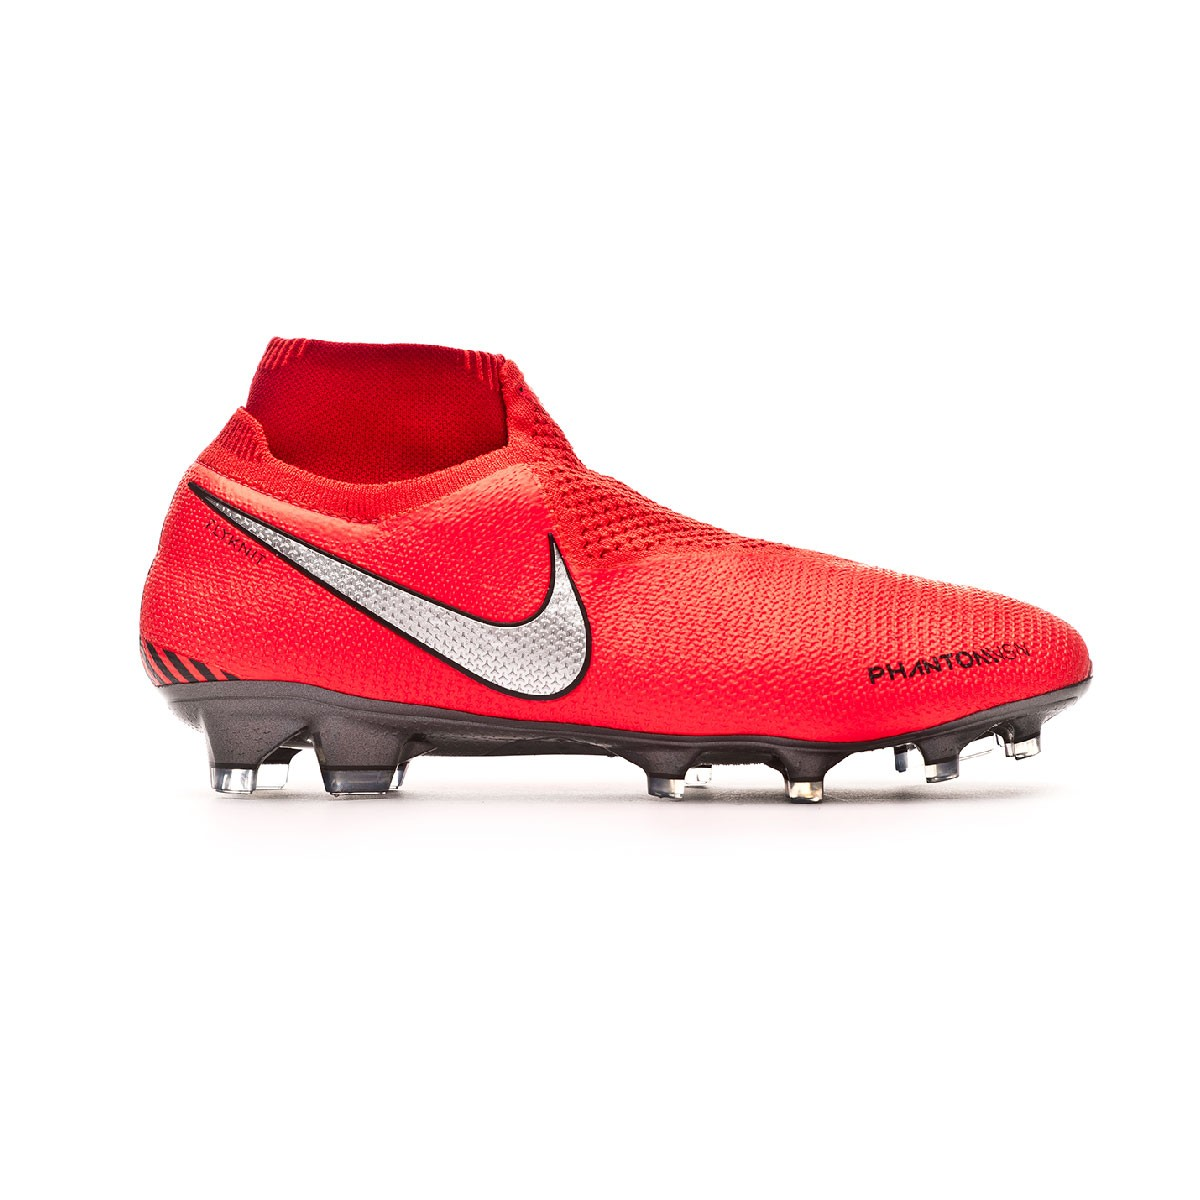 2afc0204c8a54 Football Boots Nike Phantom Vision Elite DF FG Bright crimson-Metallic  silver - Tienda de fútbol Fútbol Emotion